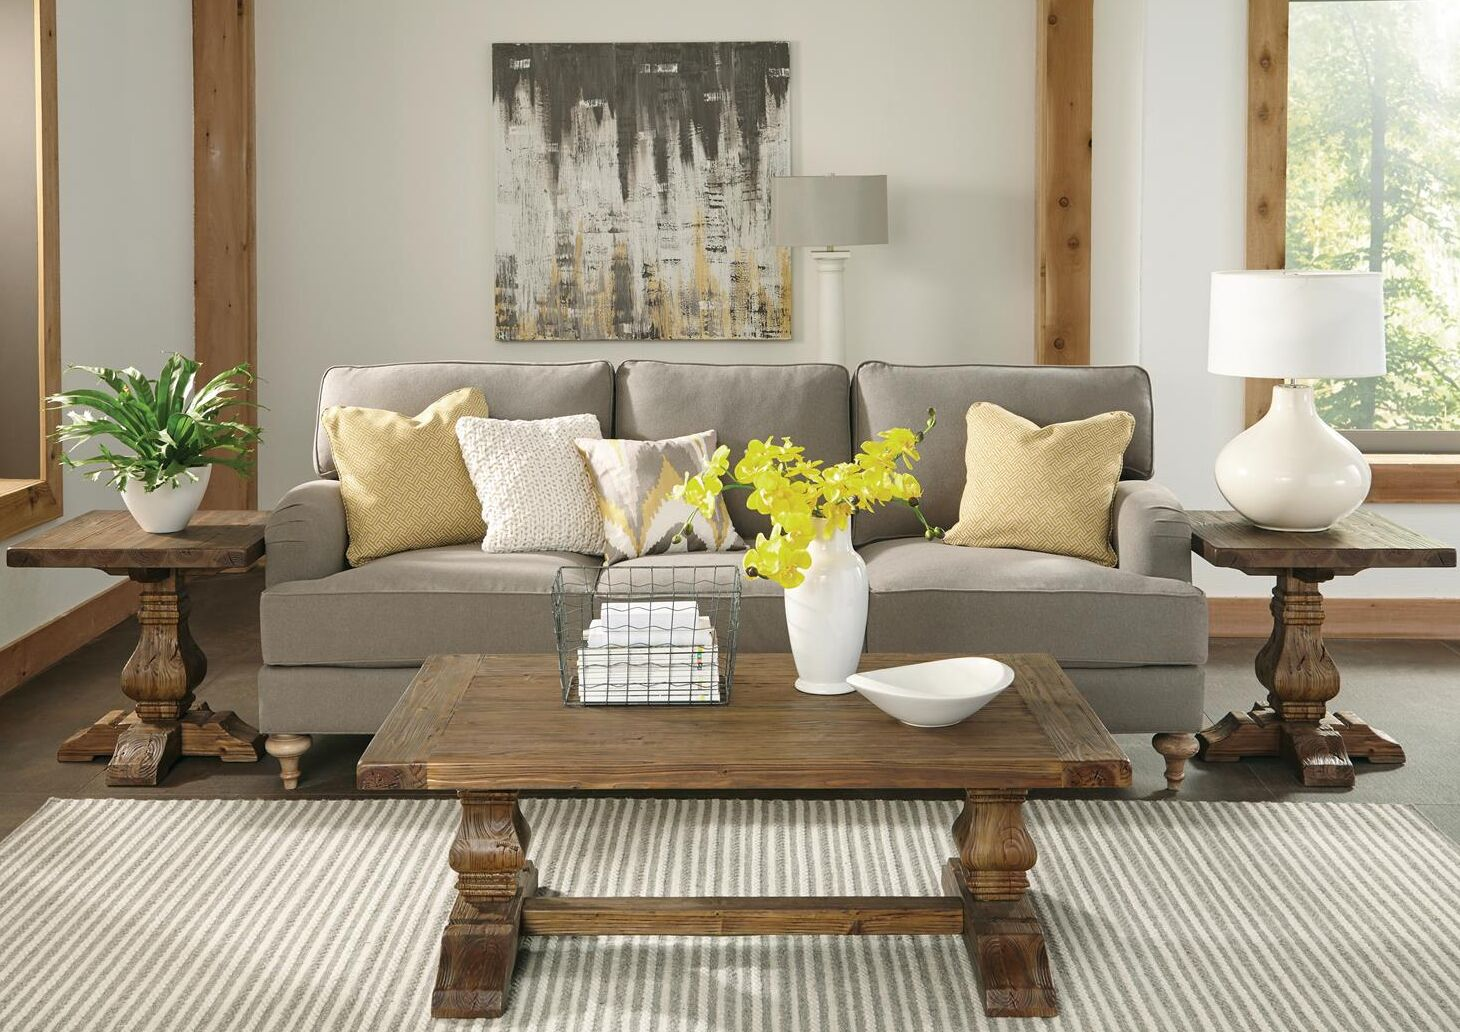 Woosley 3 Piece Coffee Table Set